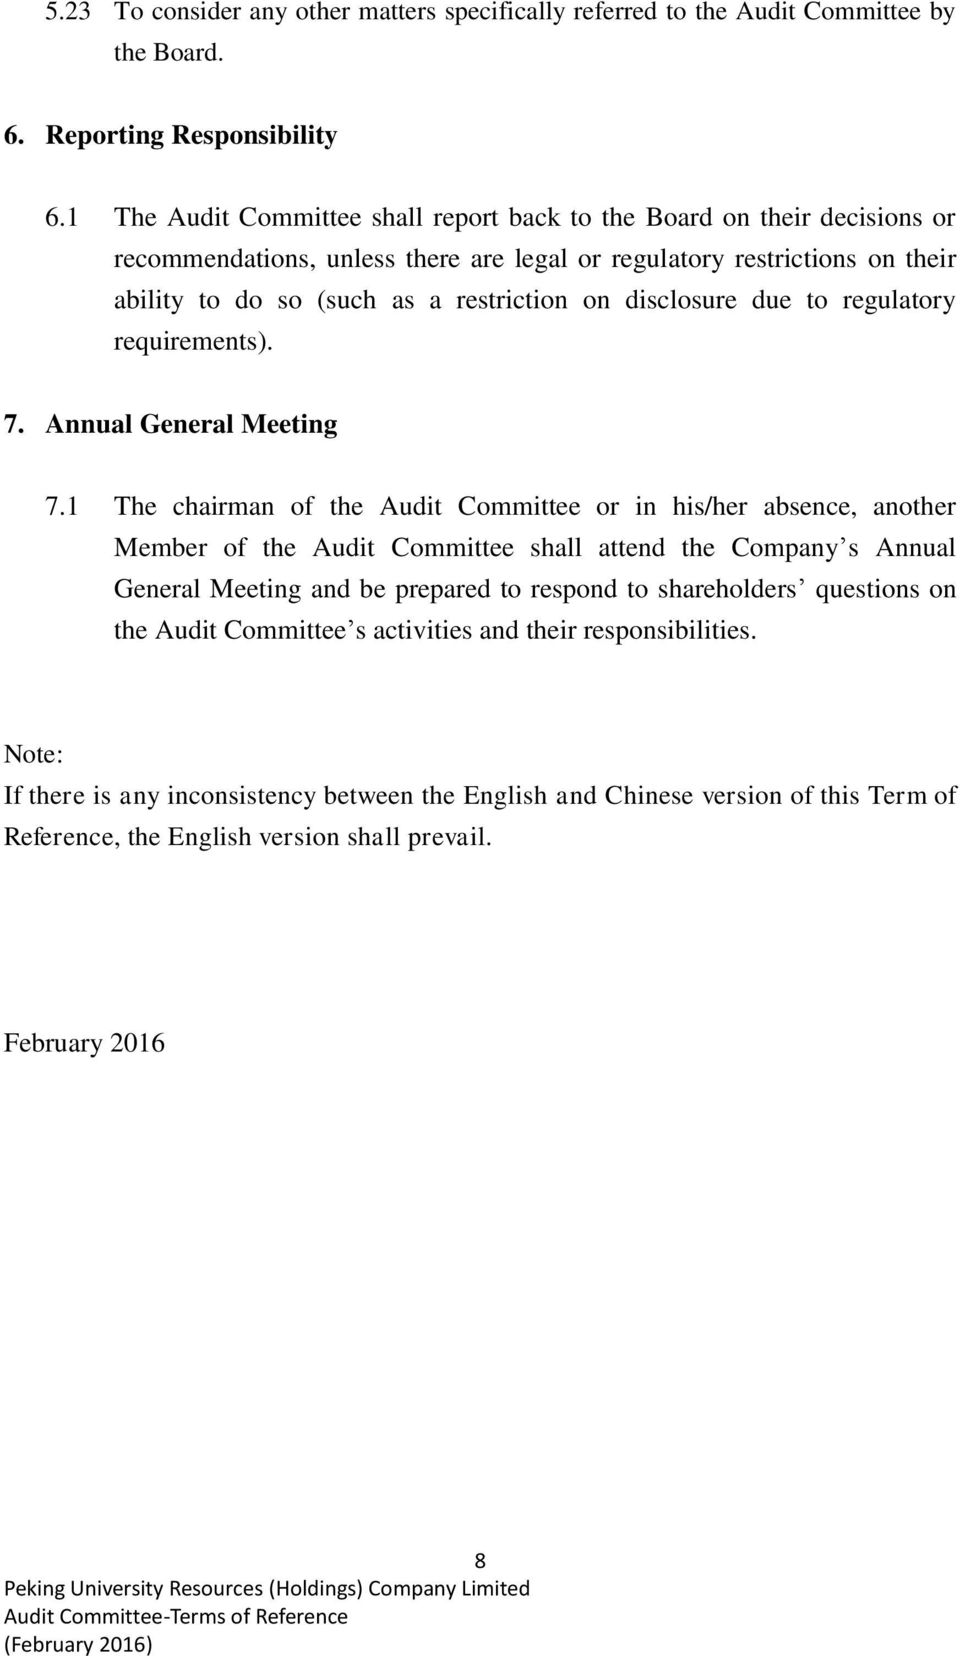 disclosure due to regulatory requirements). 7. Annual General Meeting 7.